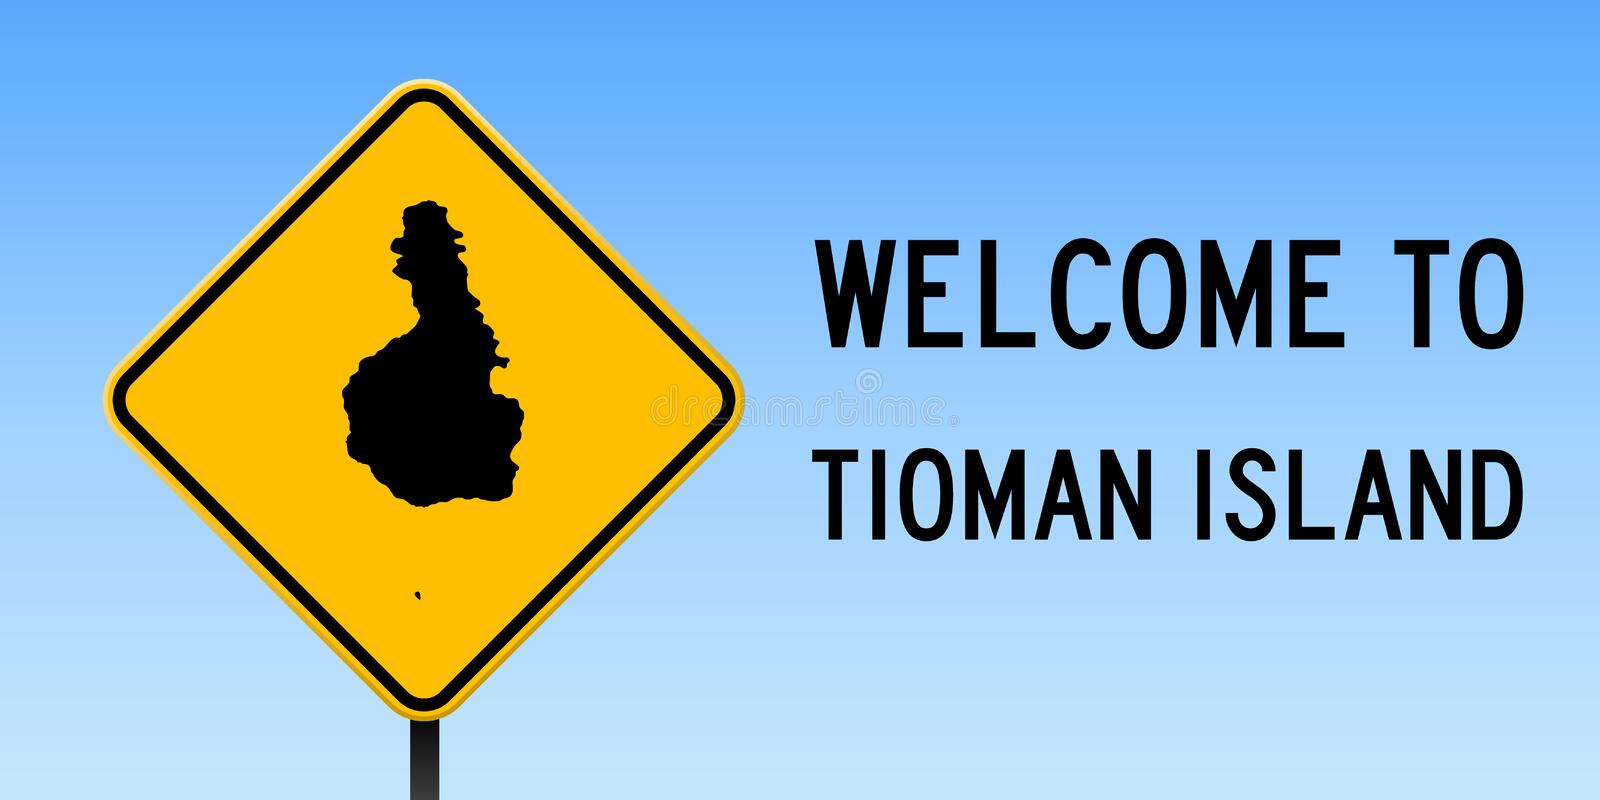 Tioman Island map on road sign. Wide poster with Tioman Island island map on yellow rhomb road sign. Vector illustration vector illustration